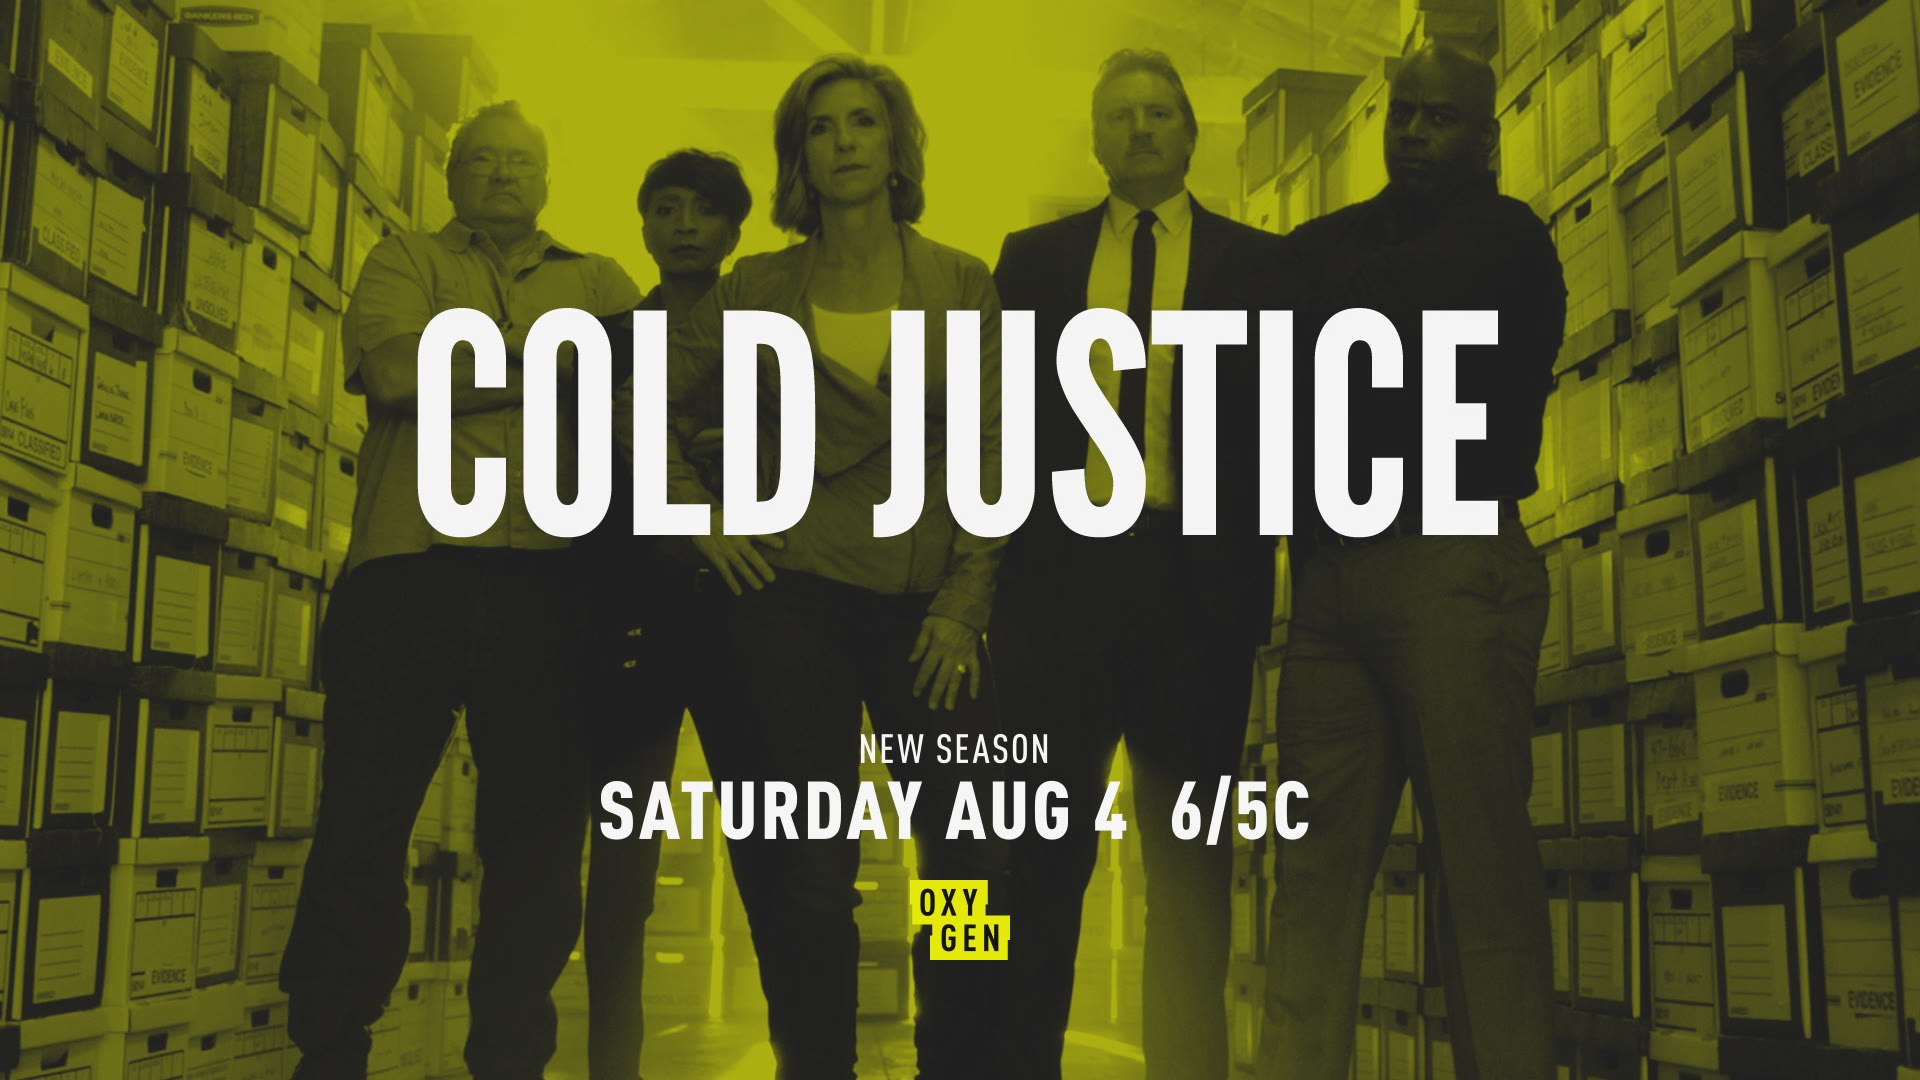 180627_3752220_A_New_Season_of_Cold_Justice_Premieres_Augus.jpg